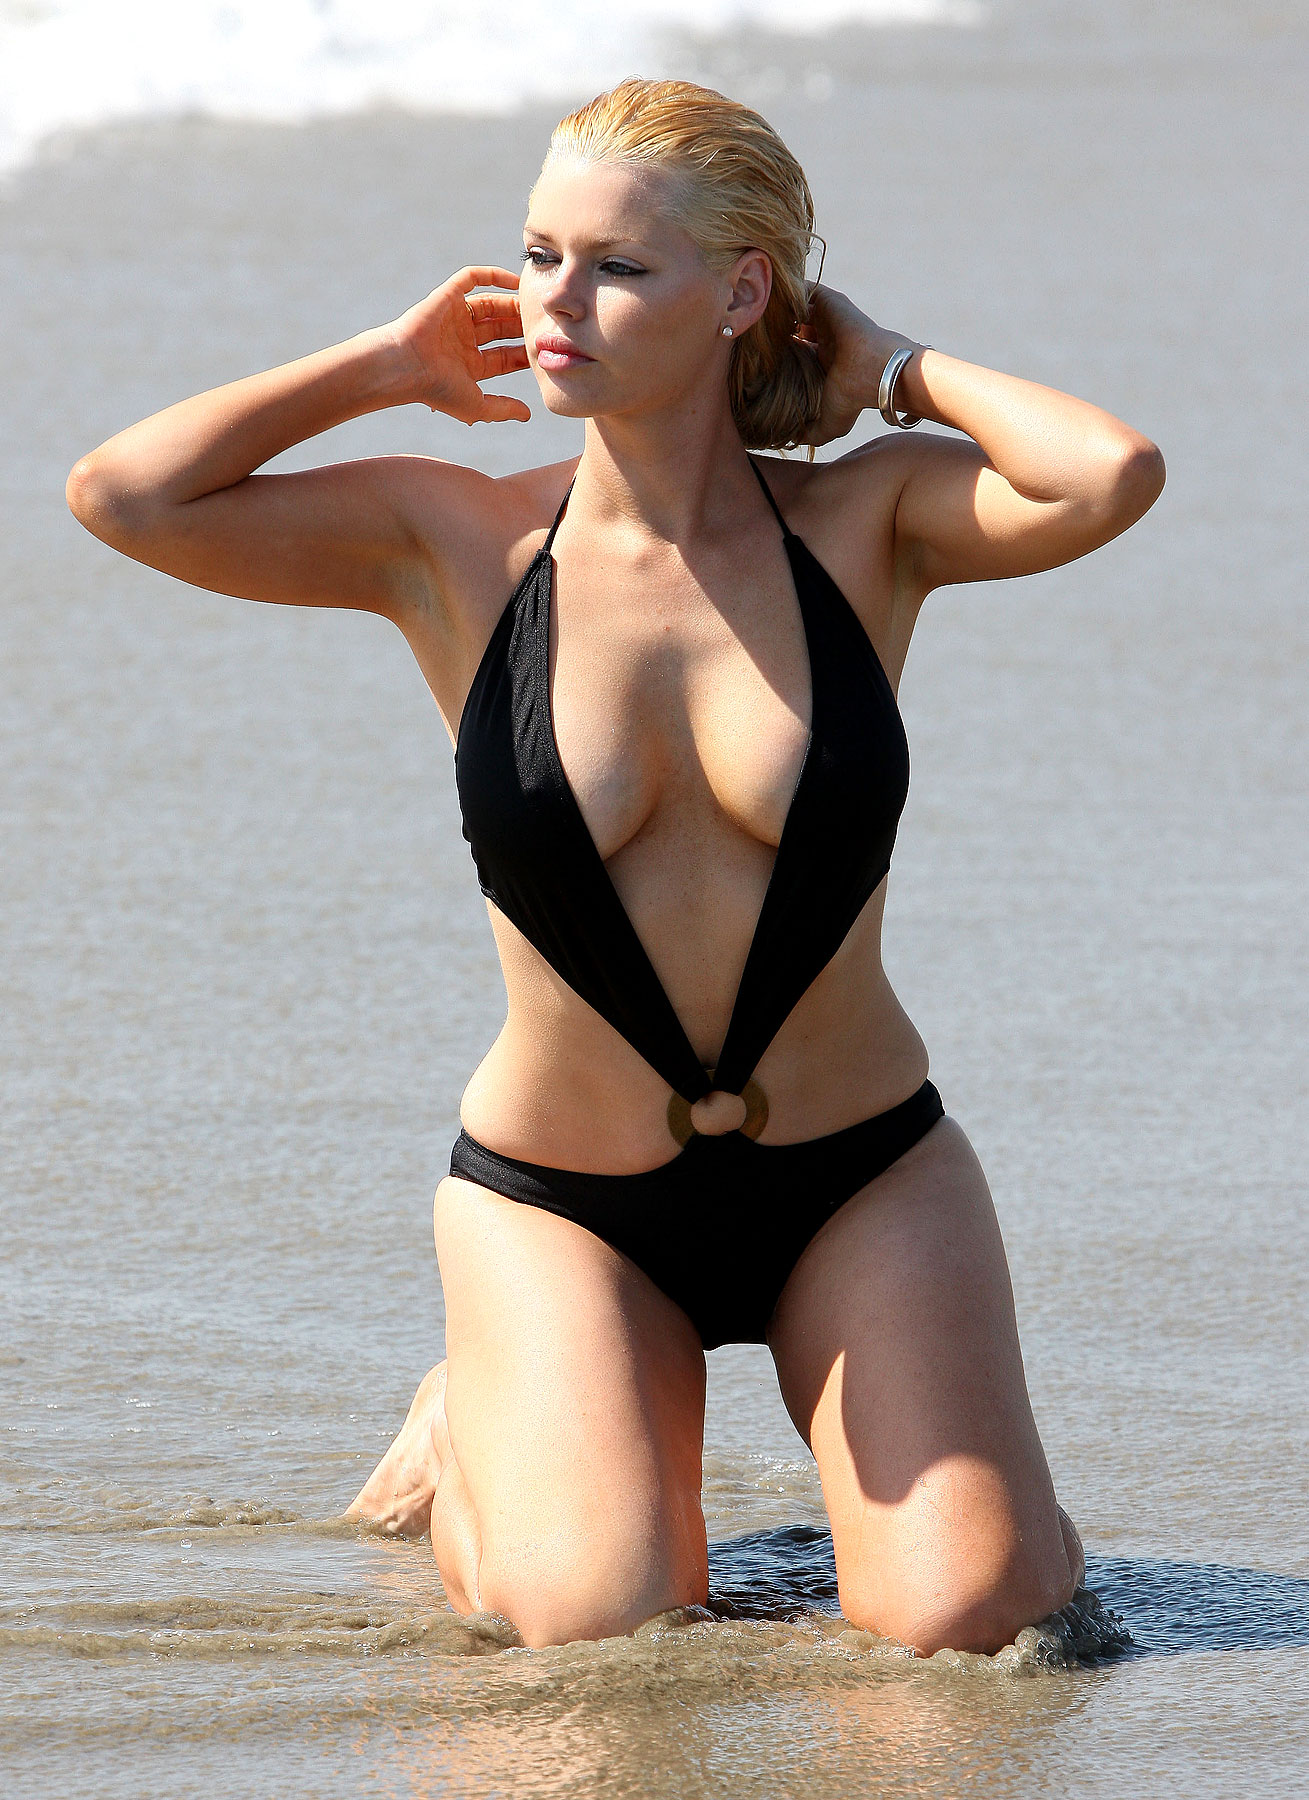 PHOTO GALLERY: Sophie Monk Takes a Dip—and Gives a Nip Slip